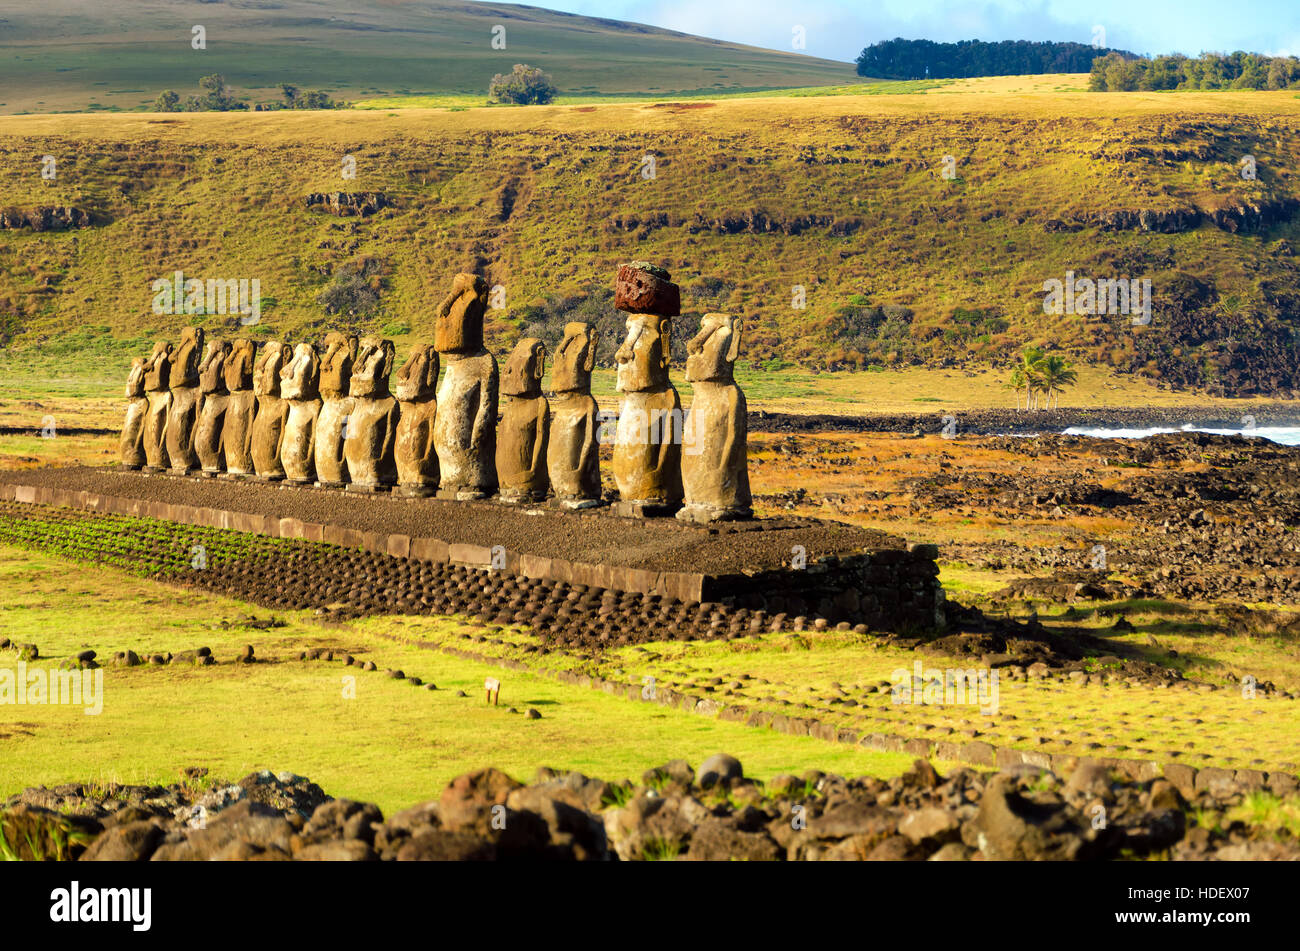 Row of Moai statues at Ahu Tongariki on Easter Island in Chile - Stock Image